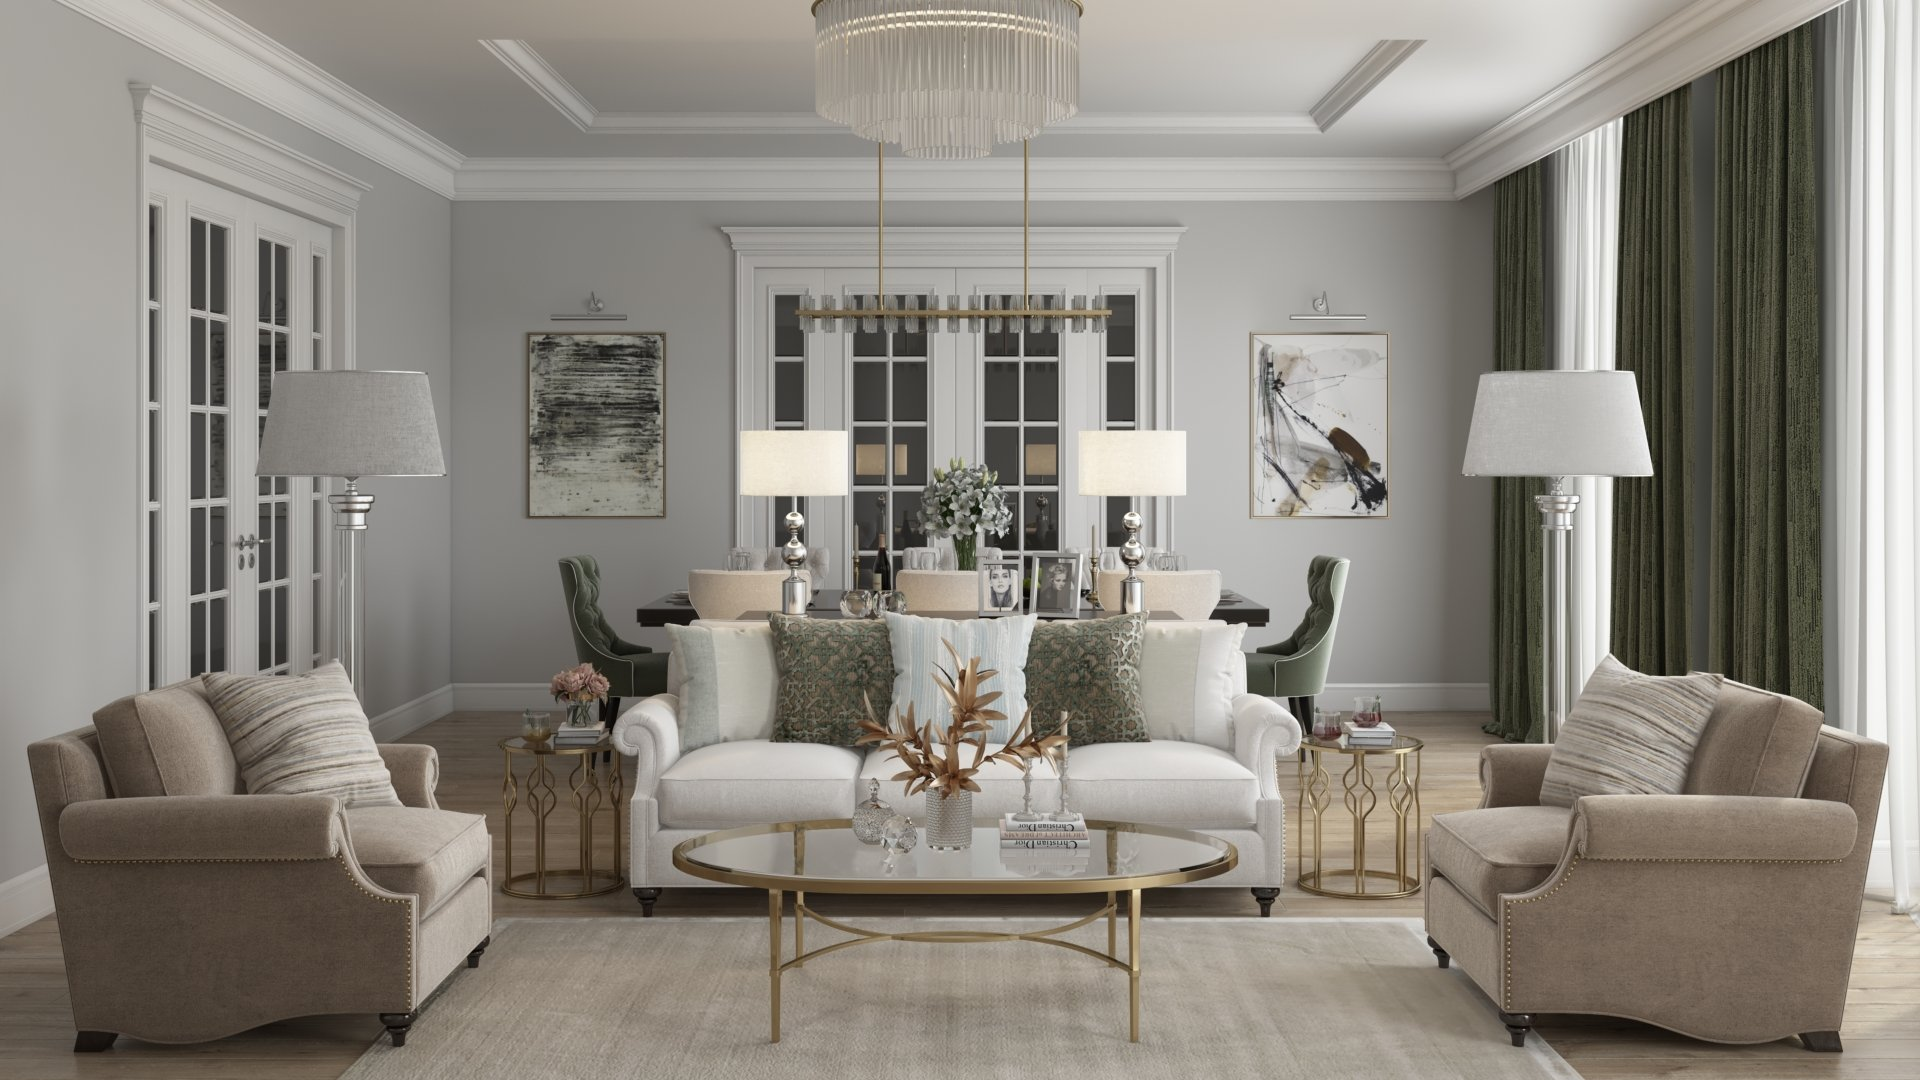 A 3D Interior Visualization without Post-production